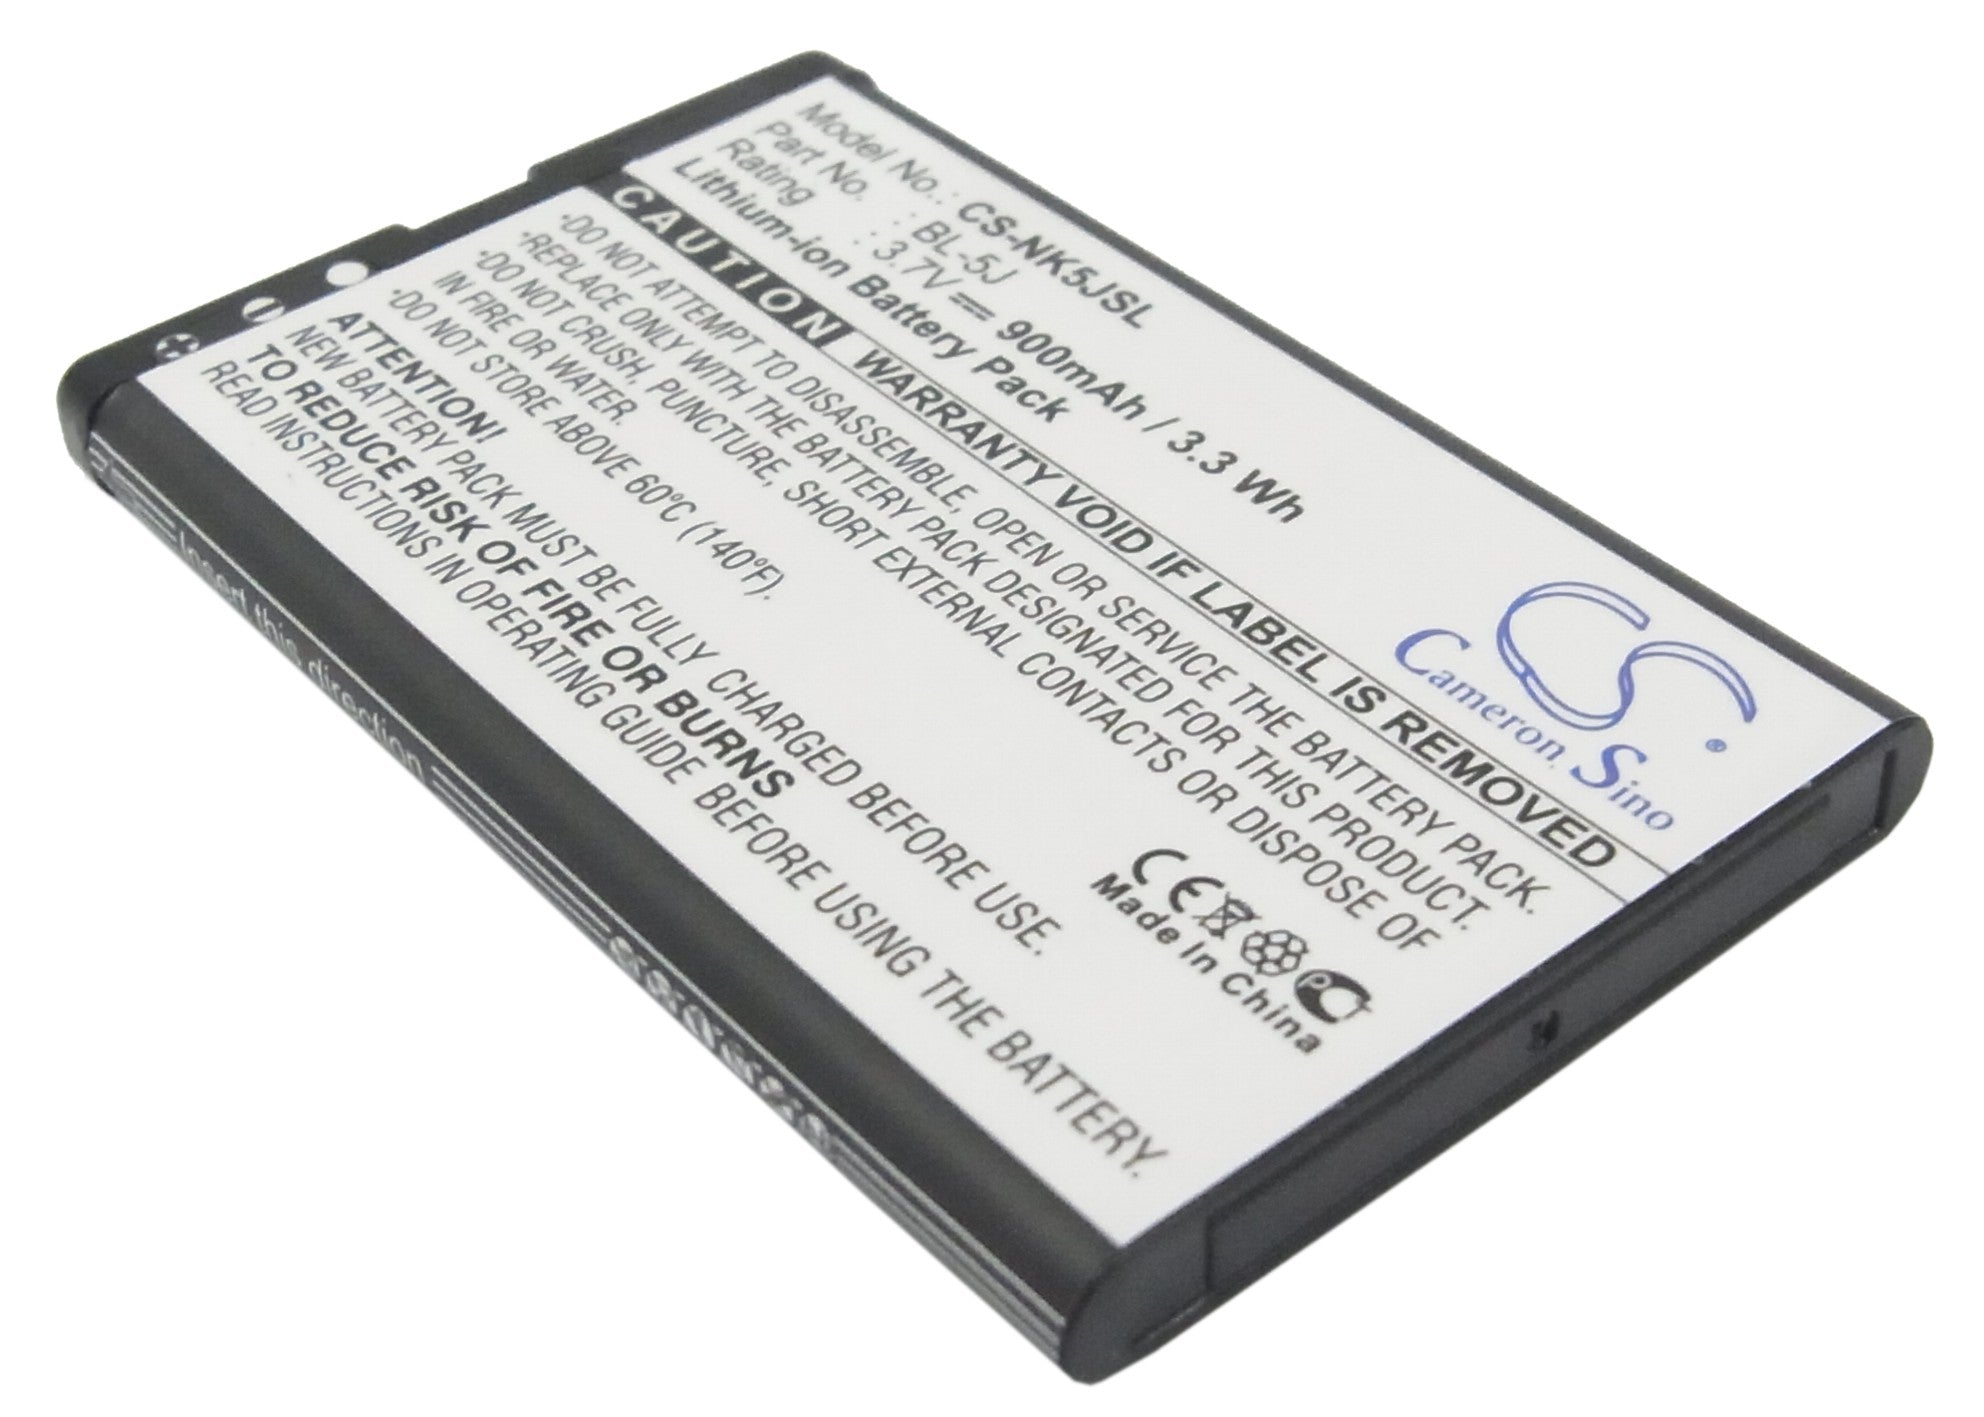 Cameron sino battery for nokia for asha 200, 201, 5230, 5800.